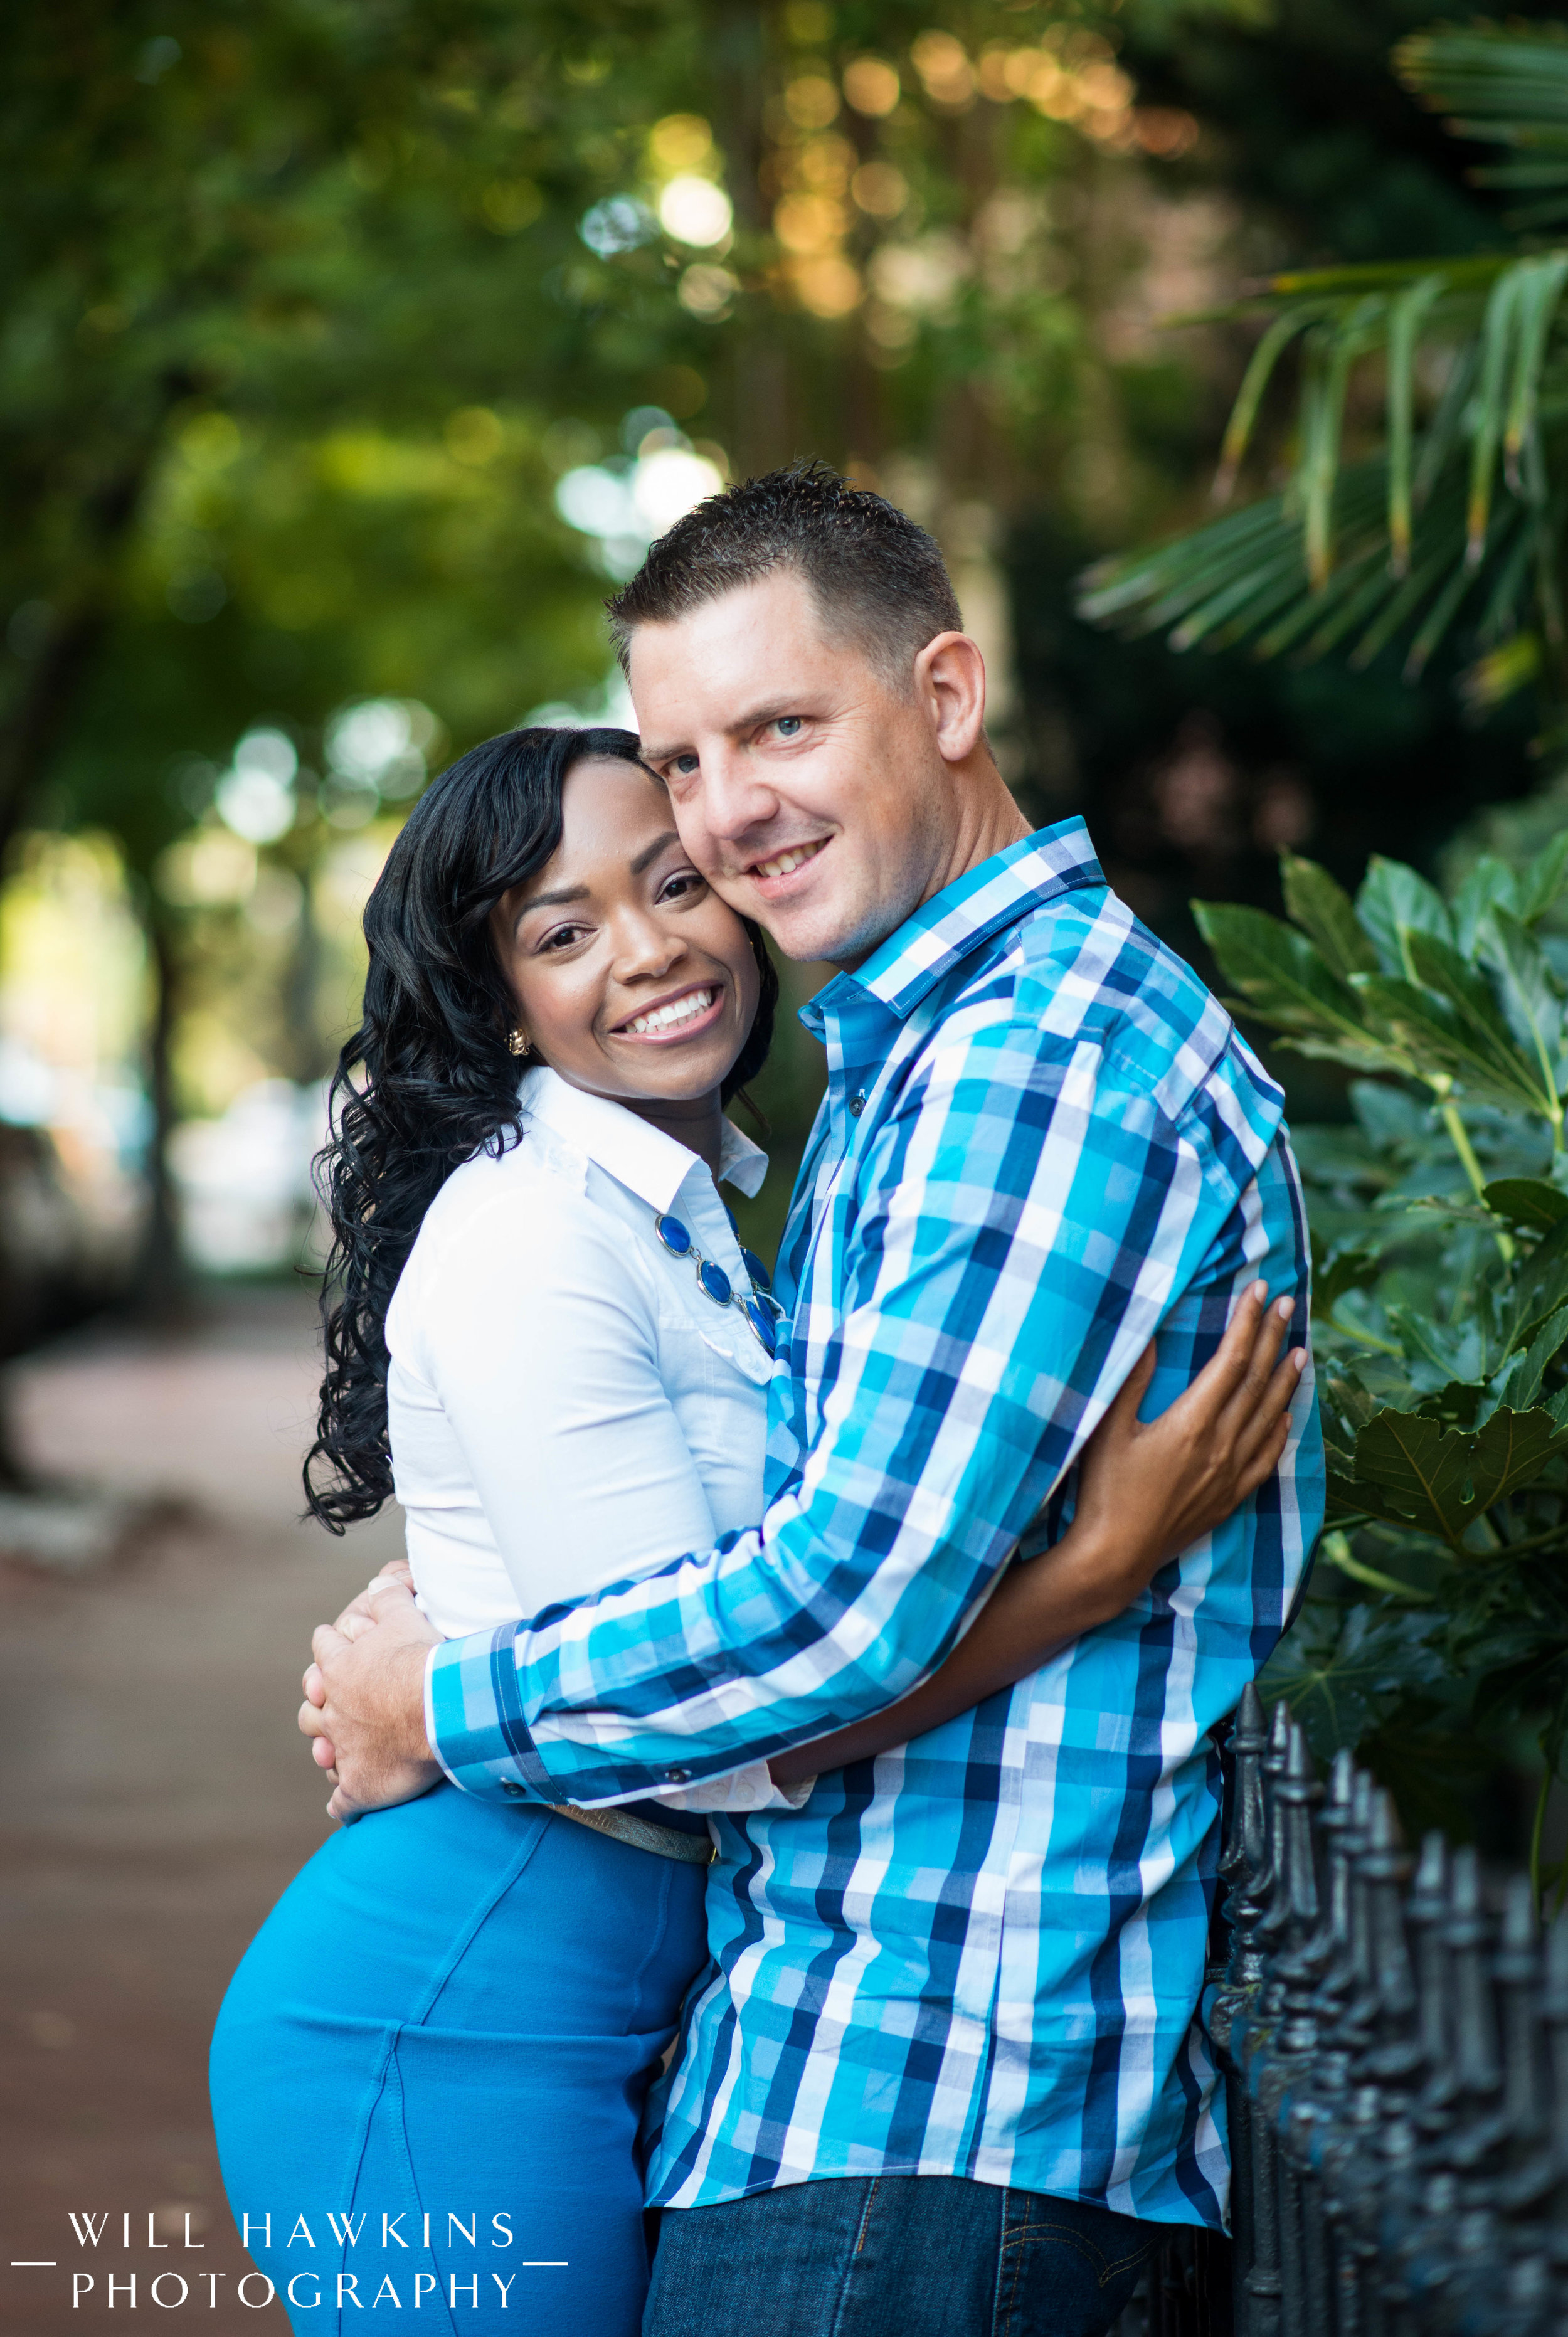 Will Hawkins Photography Downtown Norfolk Virginia Beach Wedding Photographer Norfolk Wedding Photographer Norfolk Engagement Photographer Norfolk Engagement Session